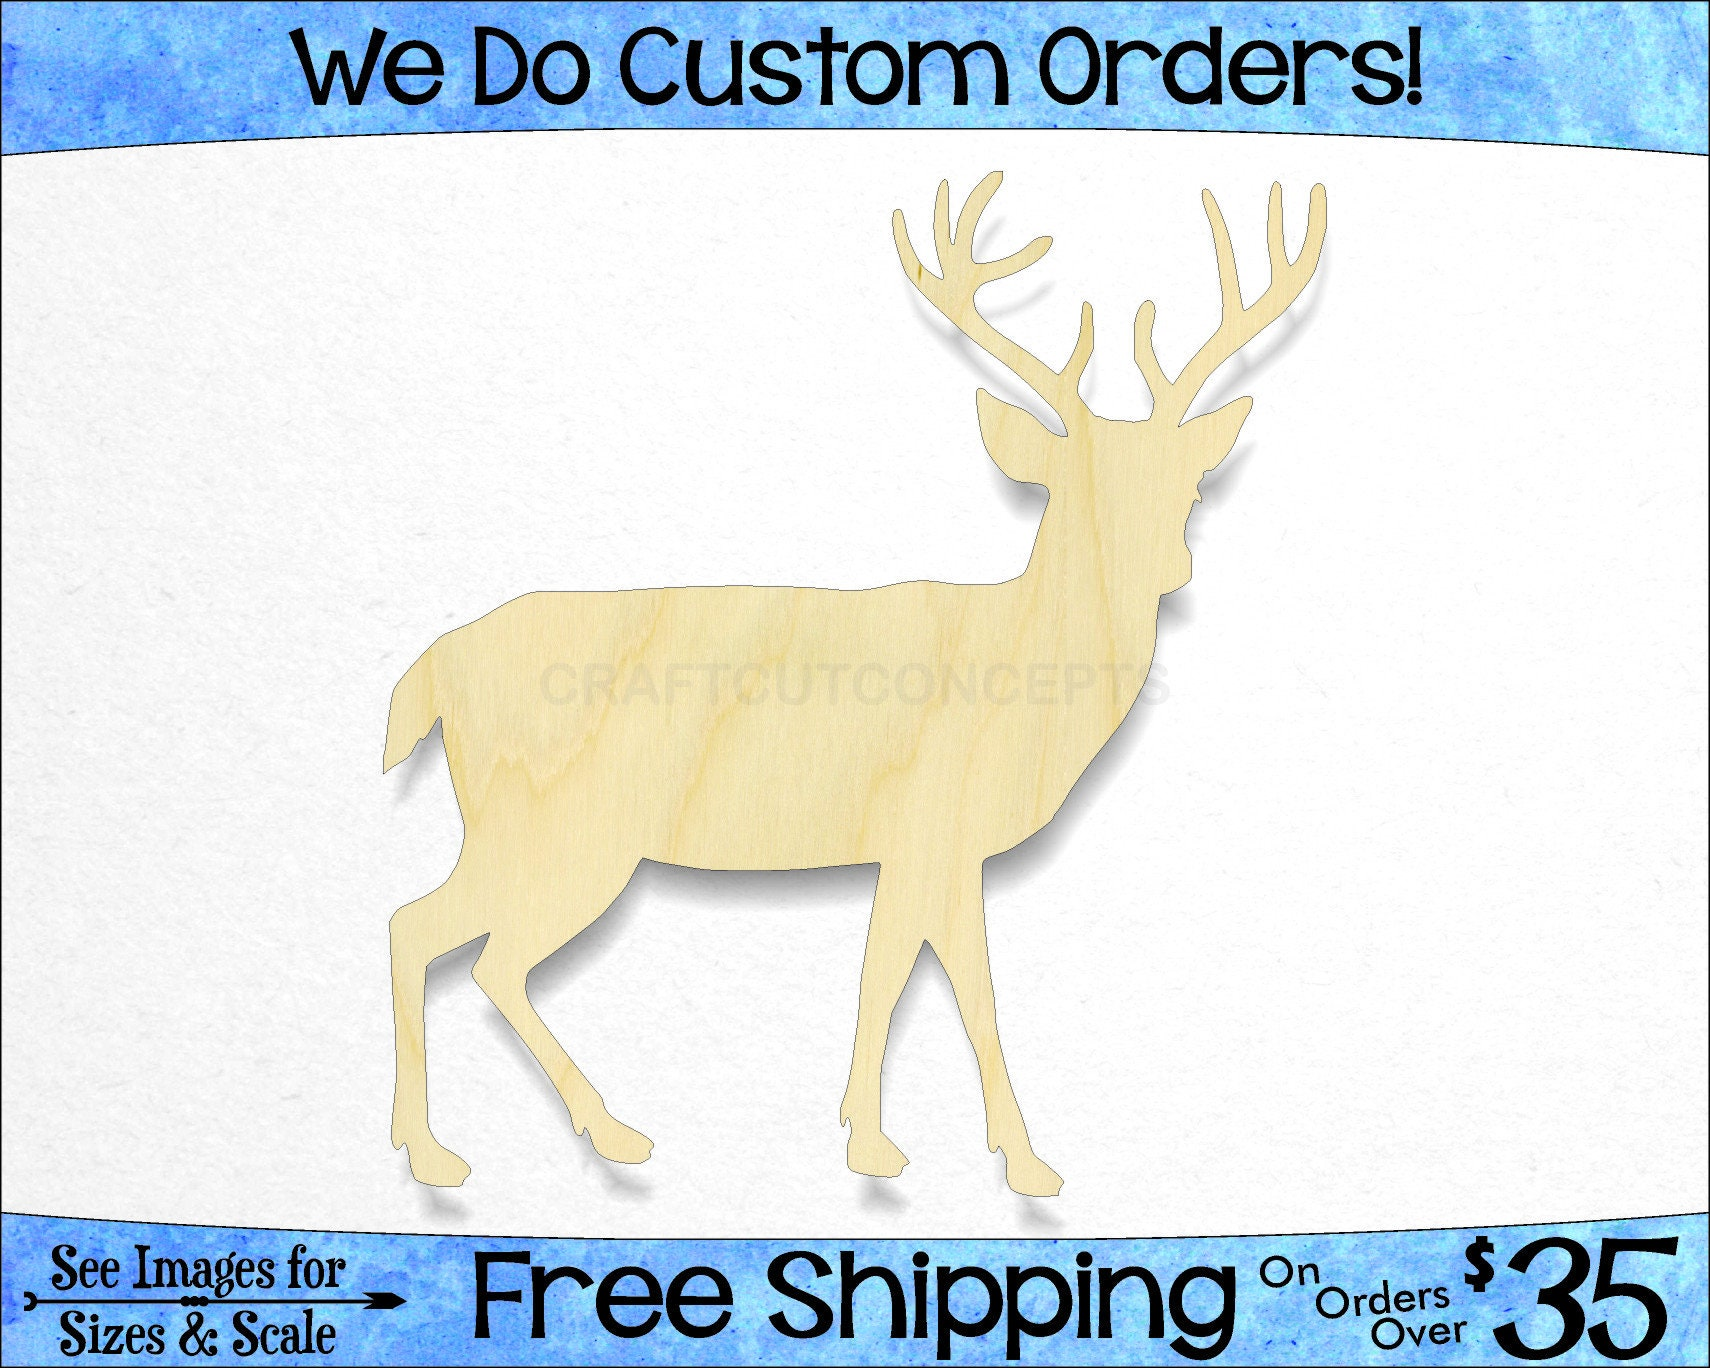 Deer With Antlers Shape Woodland Wildlife Large Small Pick Size Laser Cut Unfinished Wood Cutout Shapes So 0040 073 24